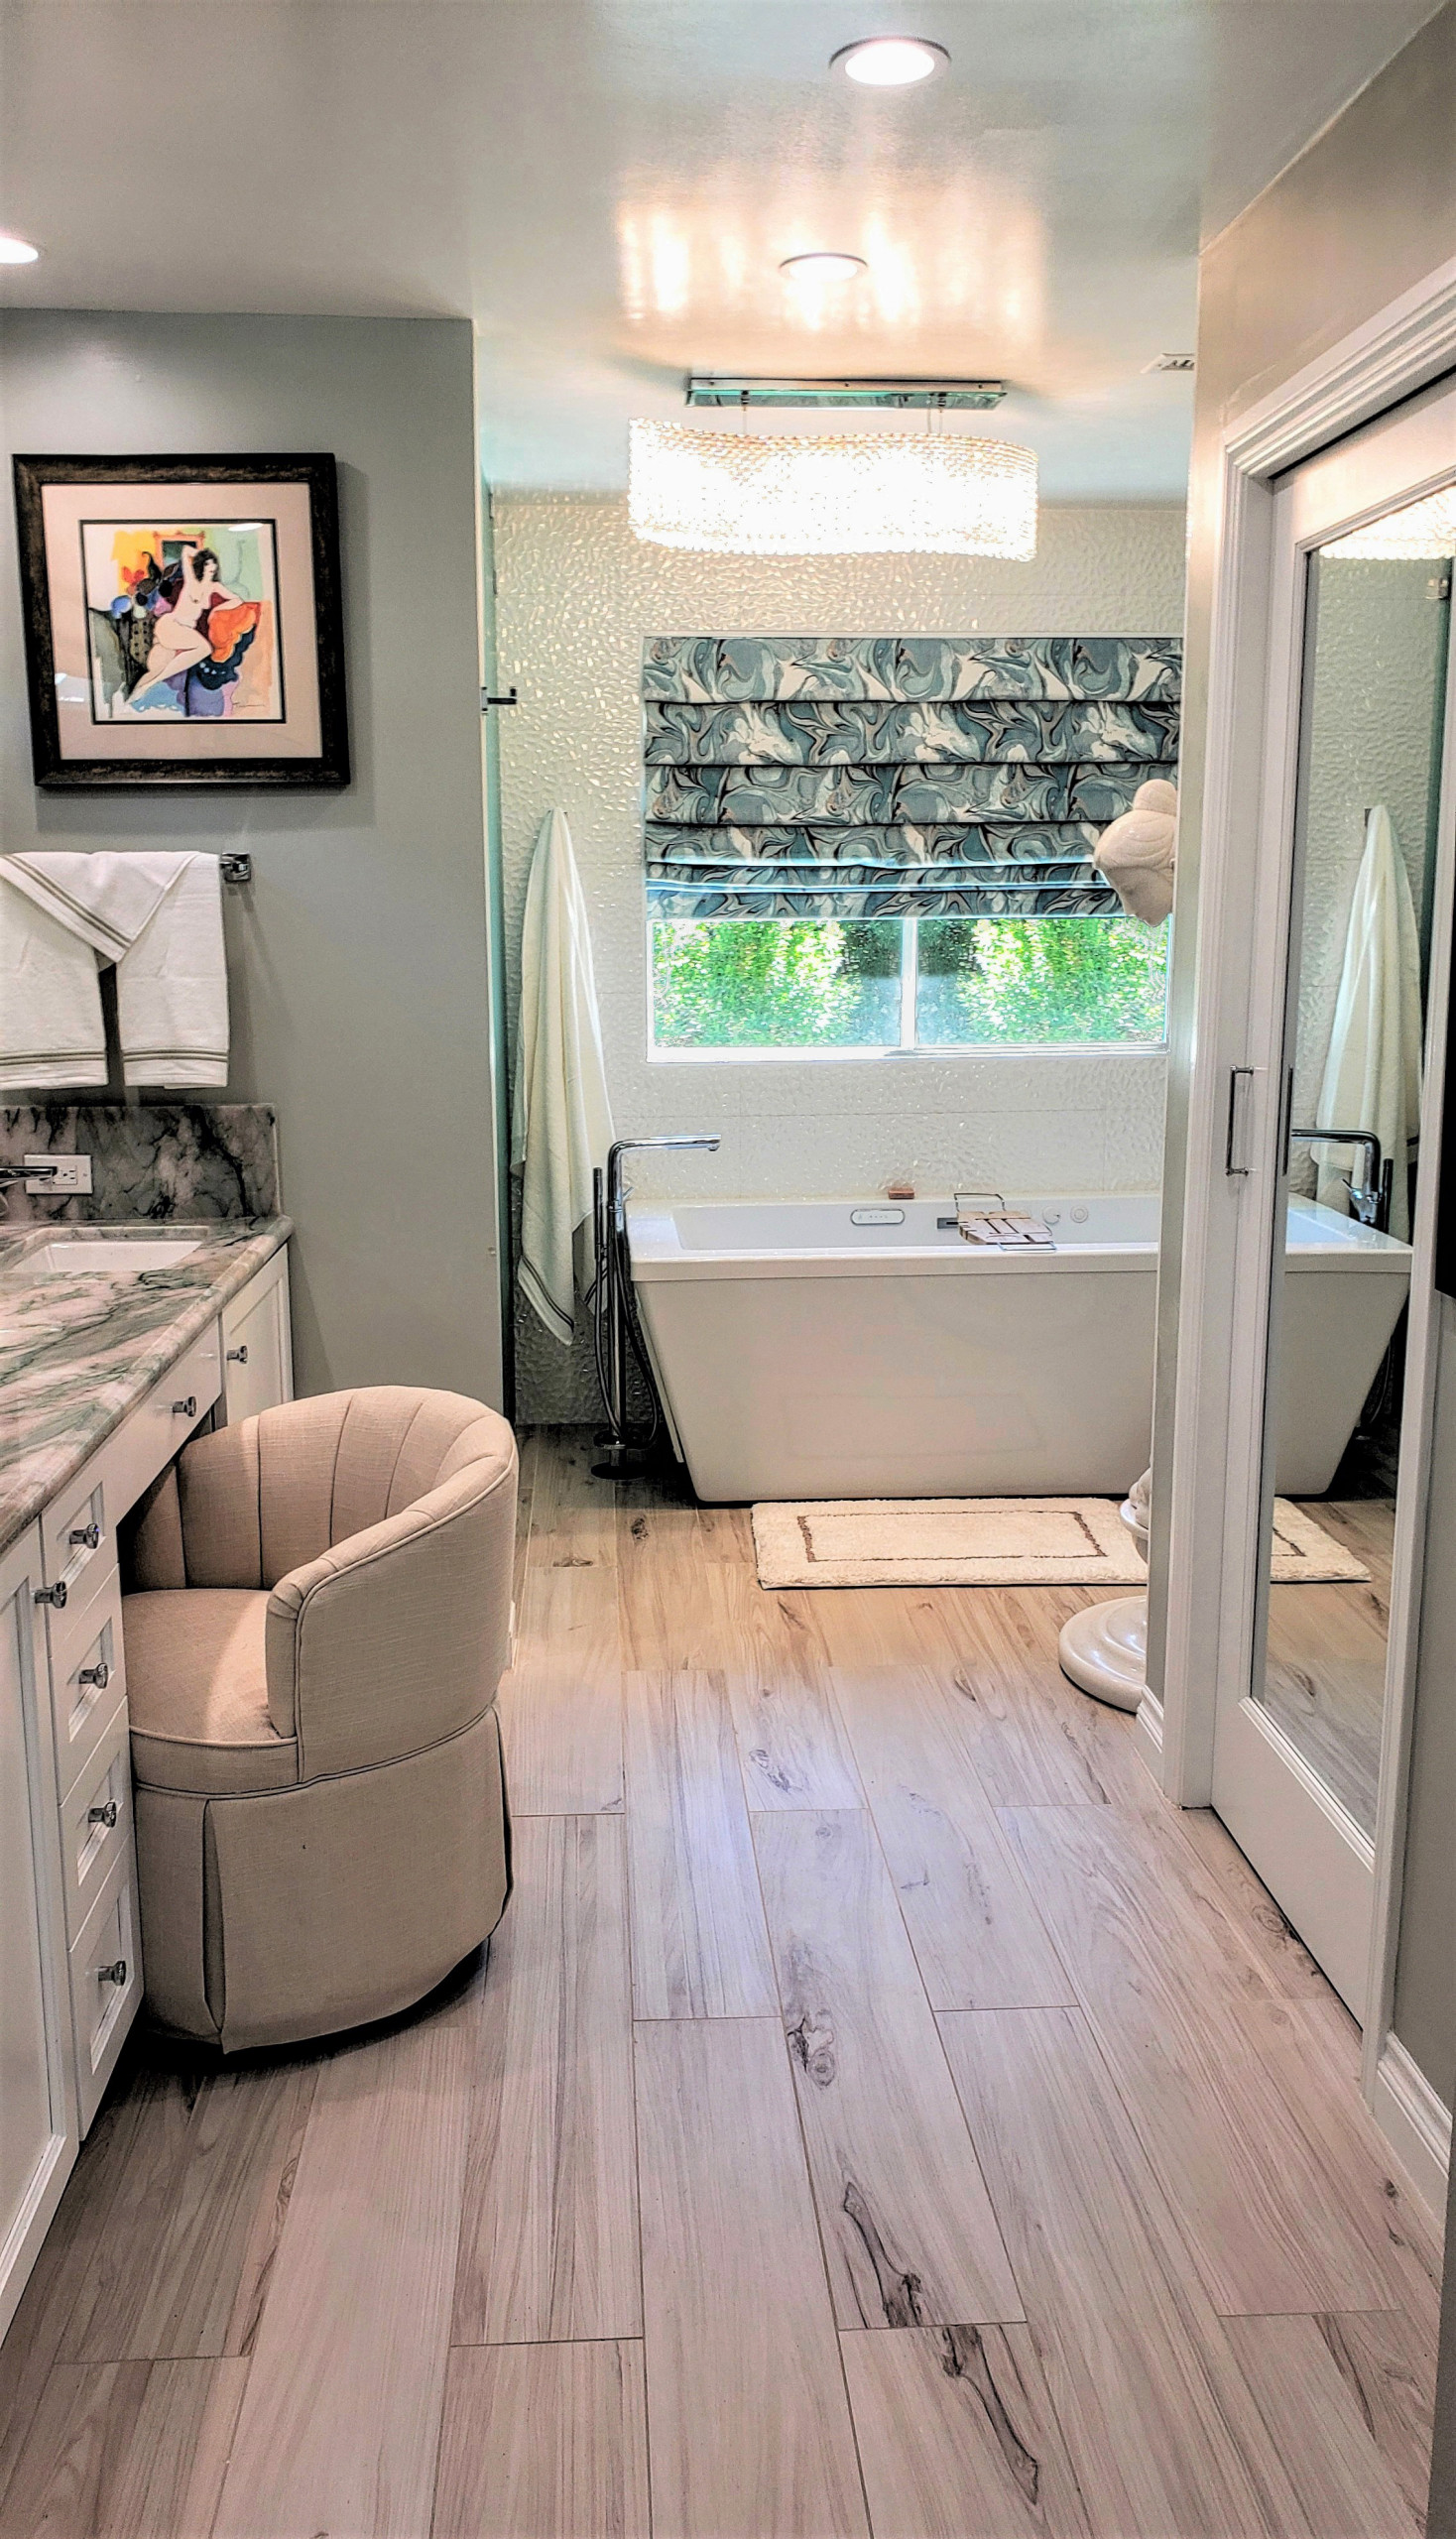 My Contemporary Bathroom Remodel Designed For A Client In Calabasas, Ca.